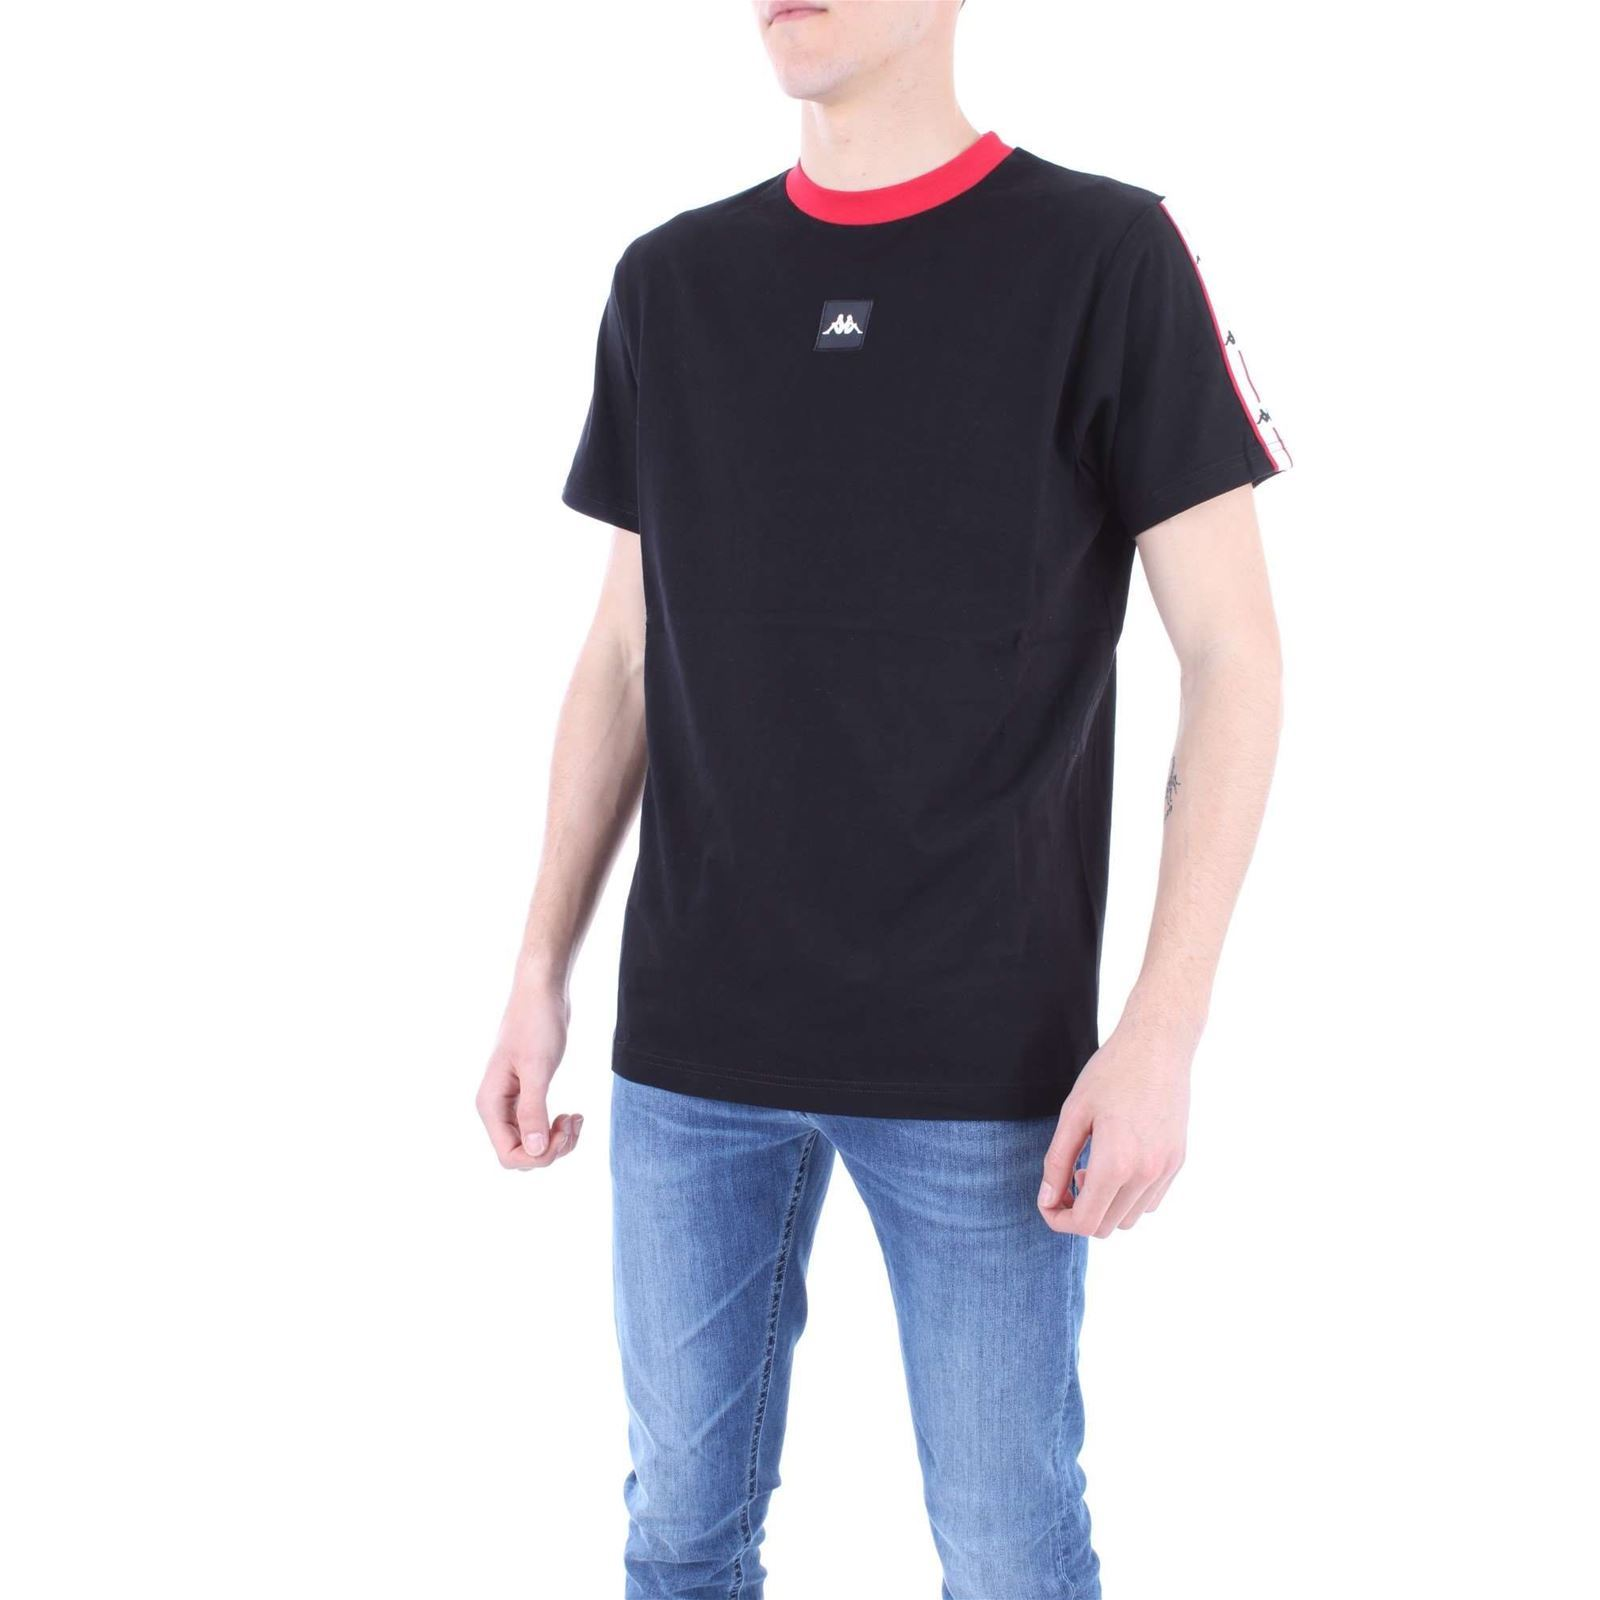 T Kappa Manches V shirt Homme CourtesNoir CWrBdoex